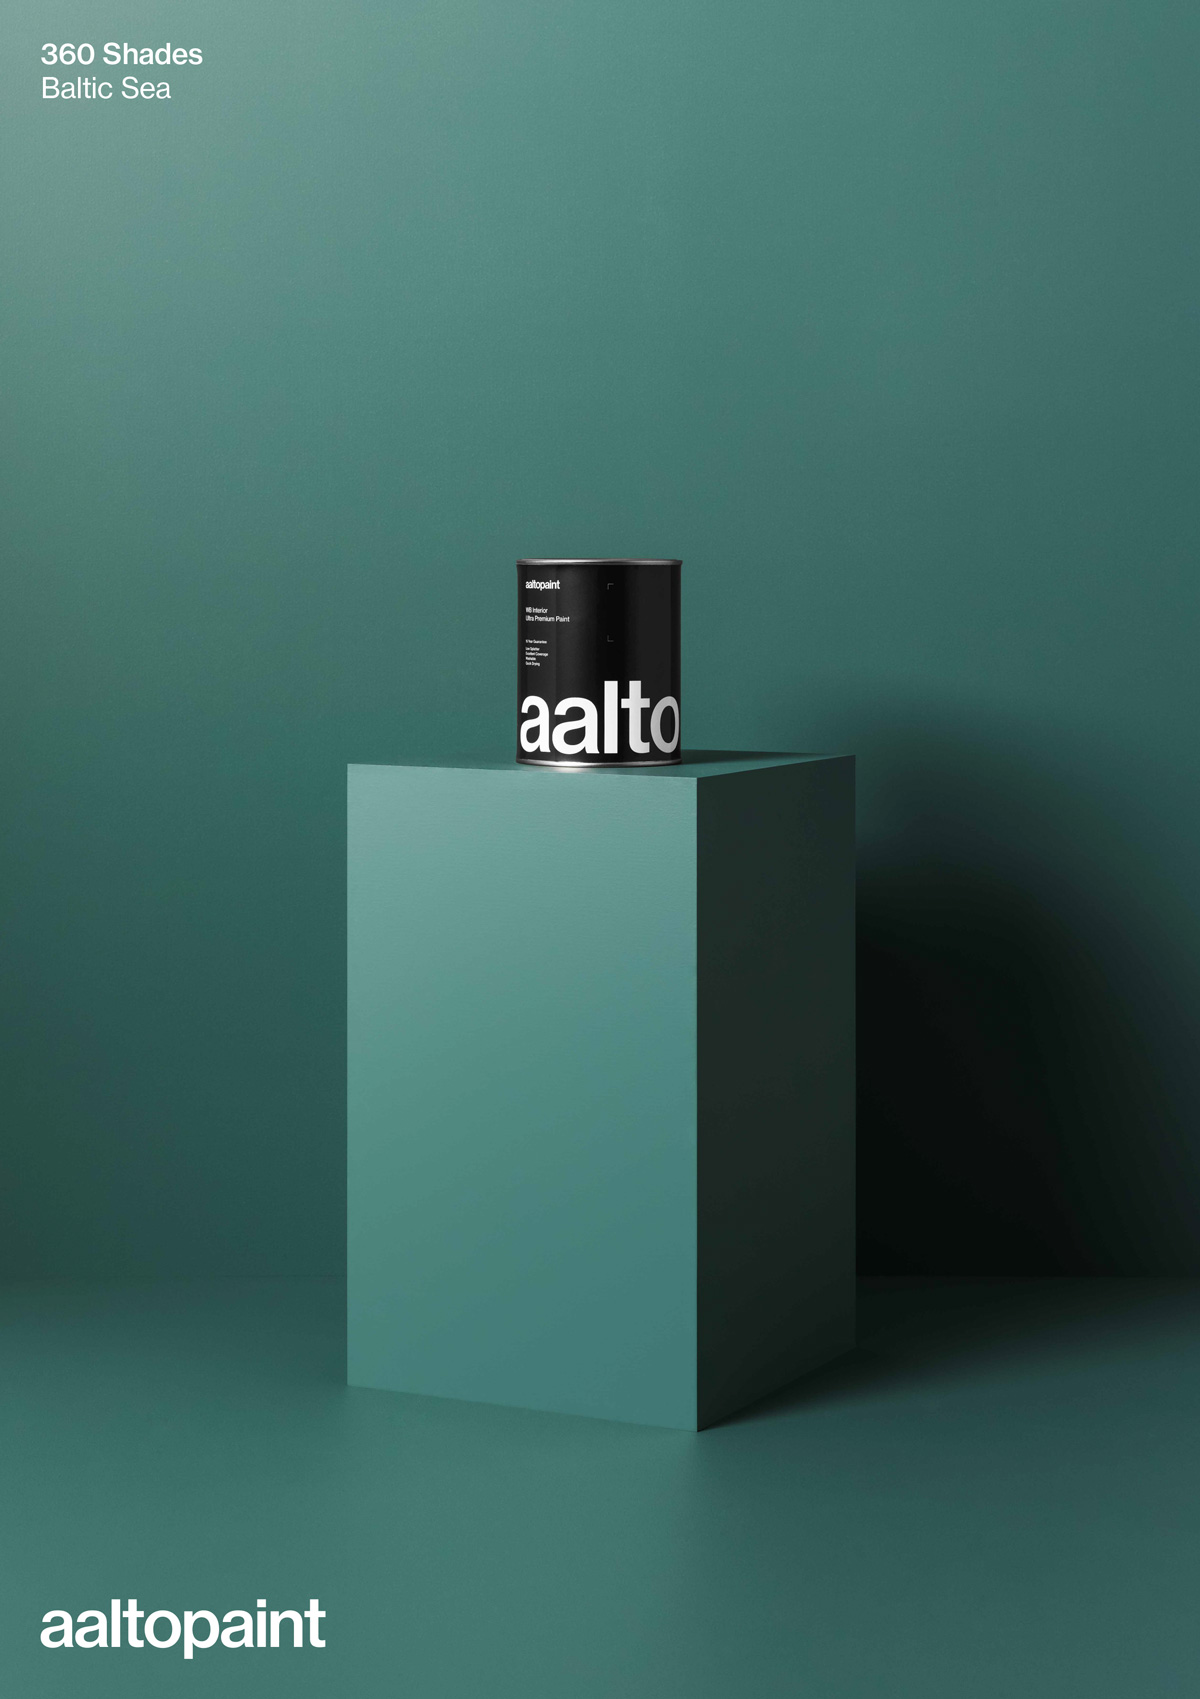 Aalto_Brand-Posters_A1-7.jpg